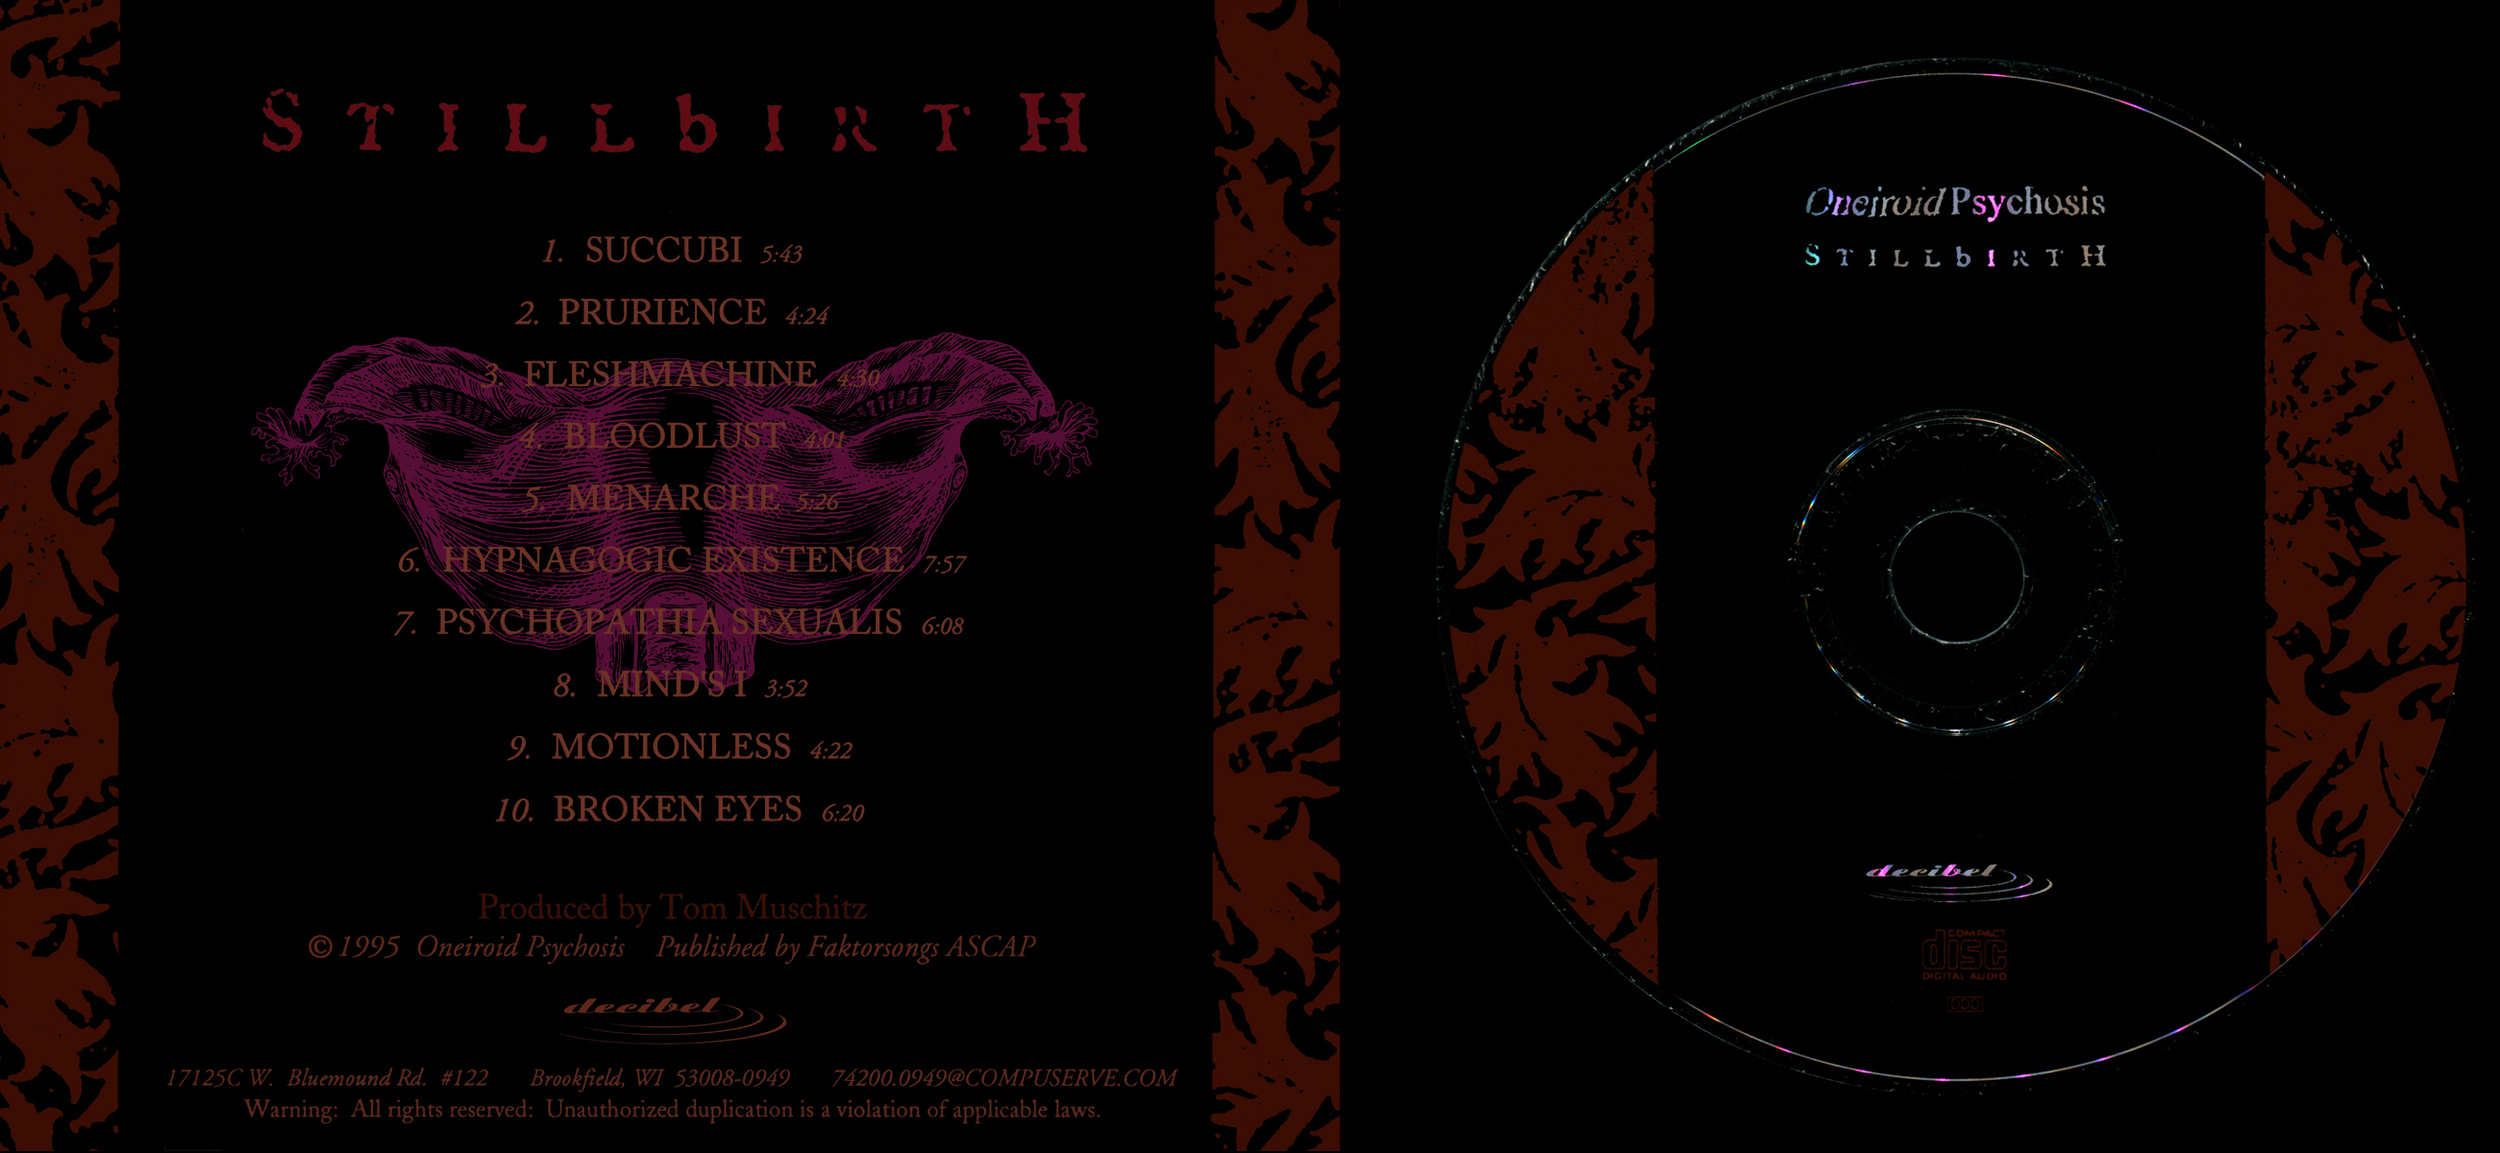 Oneiroid Psychosi s, Stillbirth.  CD tray, back, and disc design.  1995. Pen and ink. Released by Decibel Records.